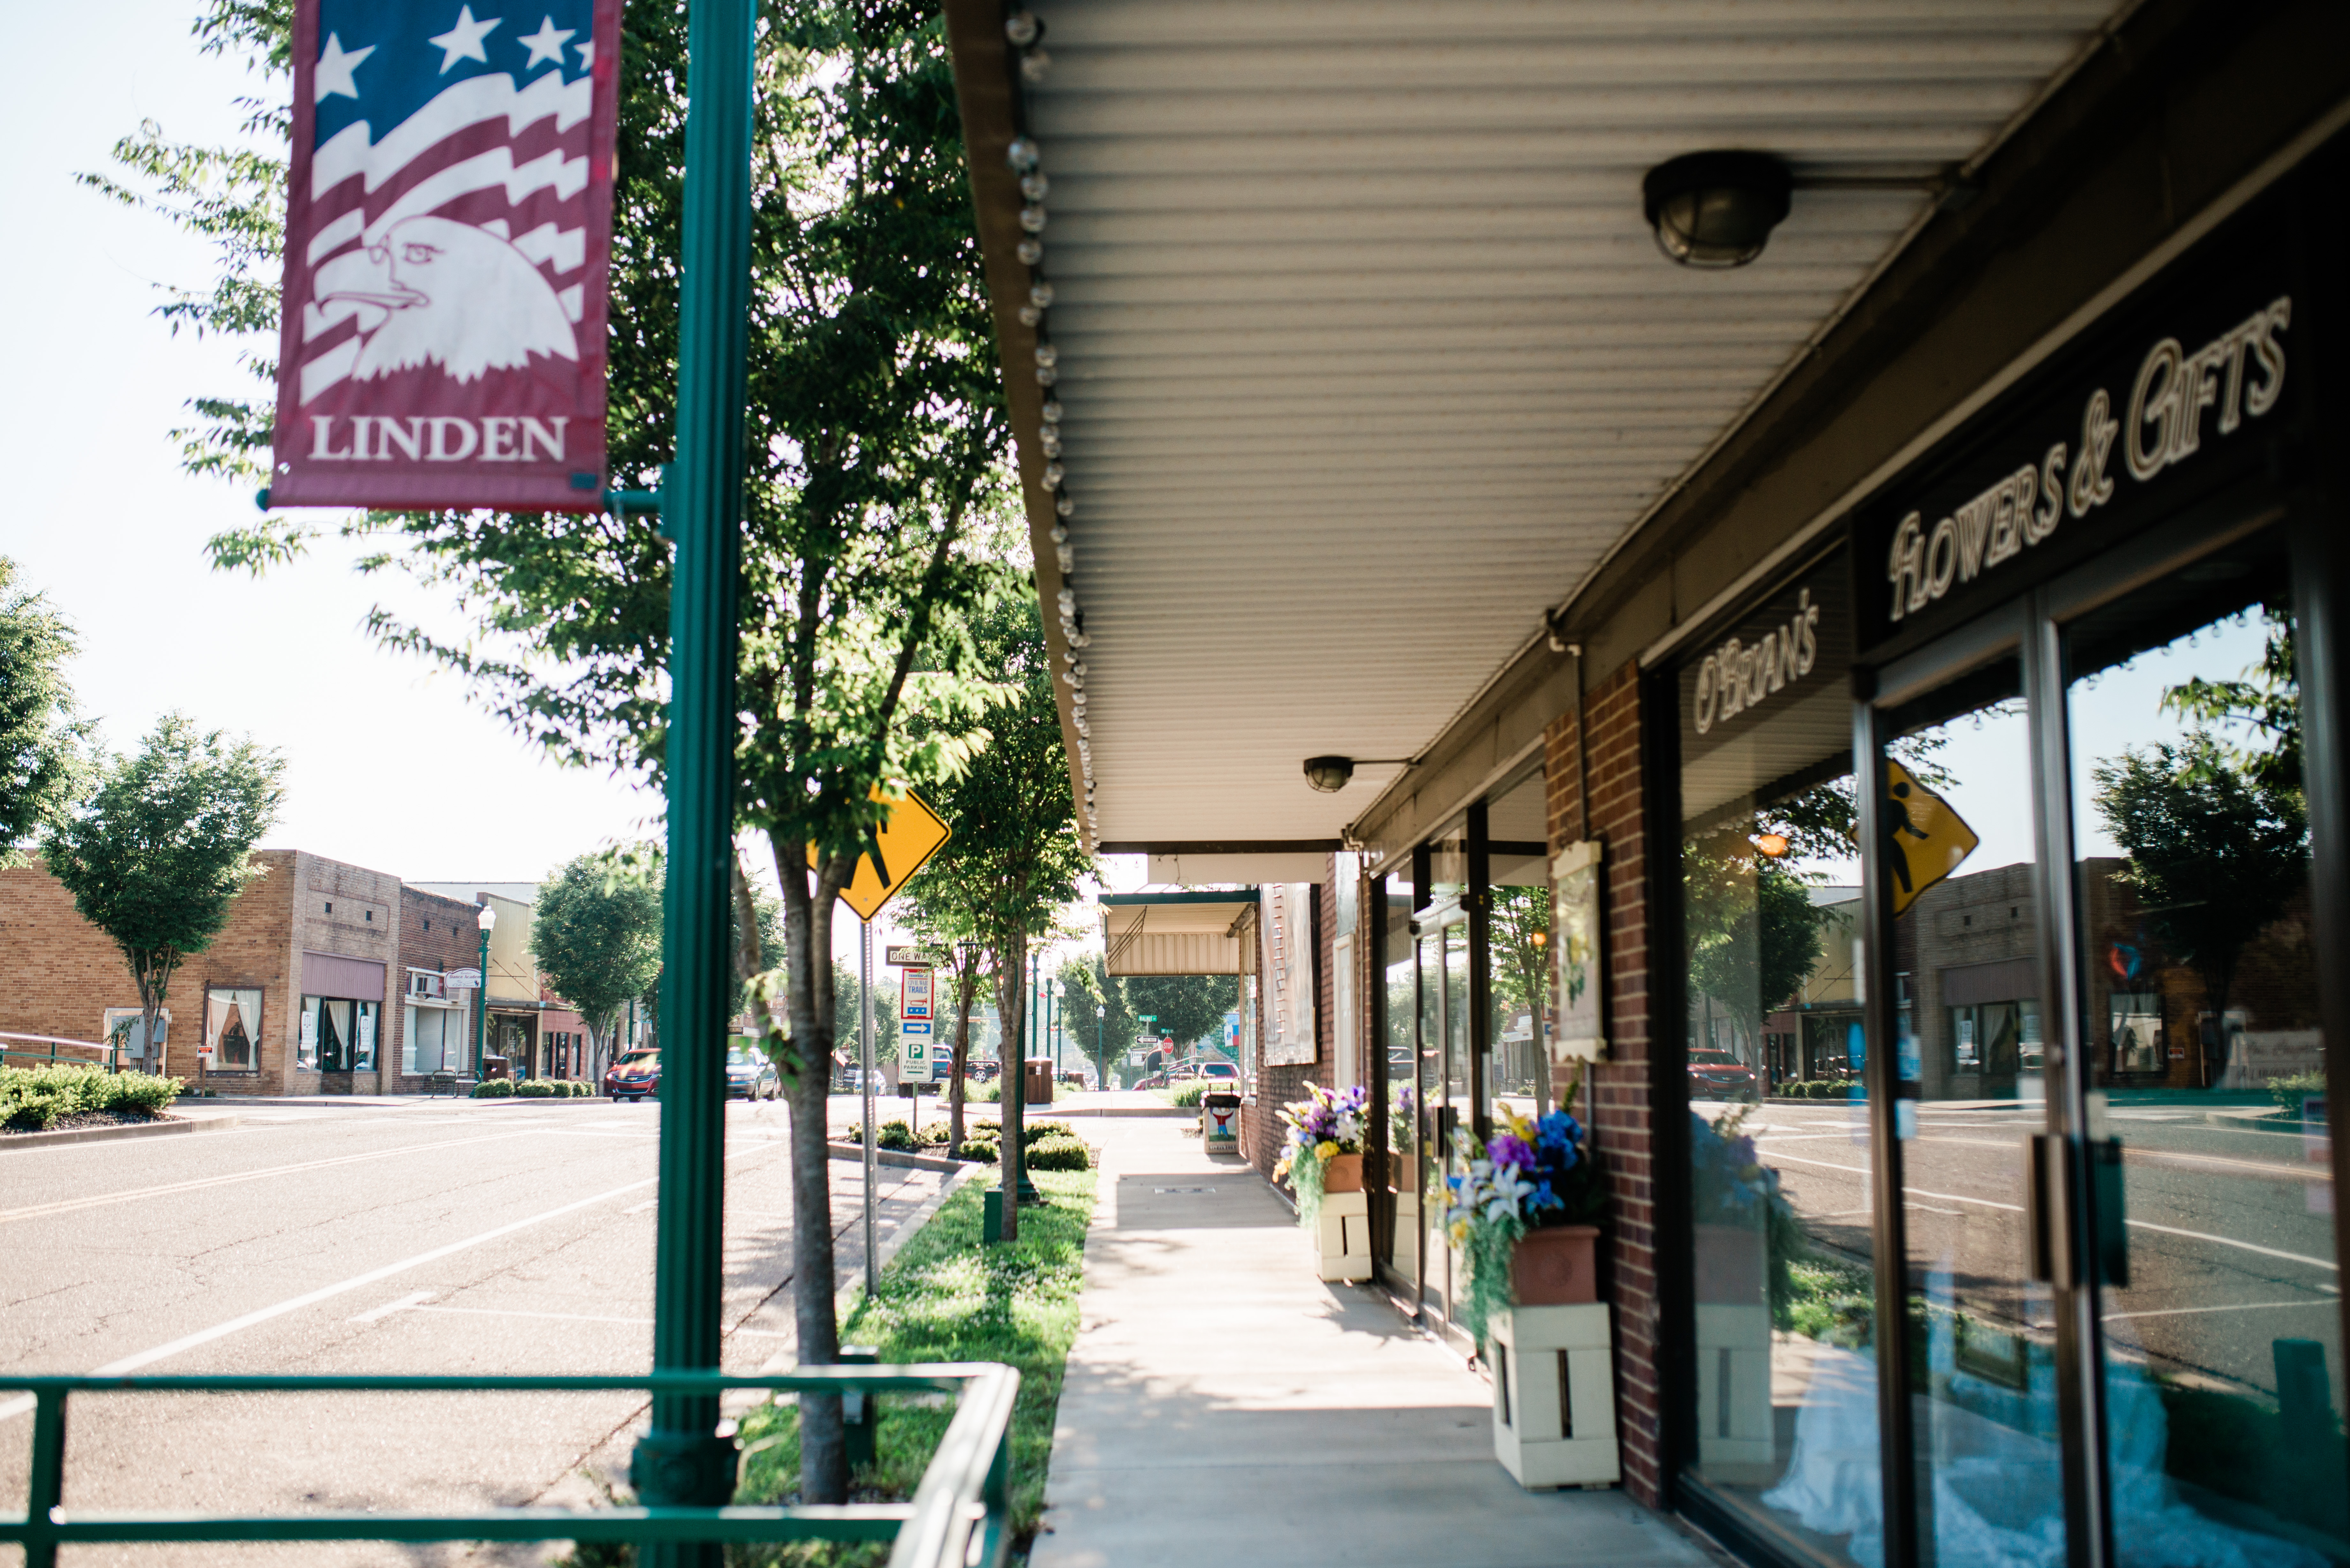 10 Small Town Day Trips From Nashville Tennessee Vacation updates on what the national utility contractors association chapter in middle tn is doing. 2